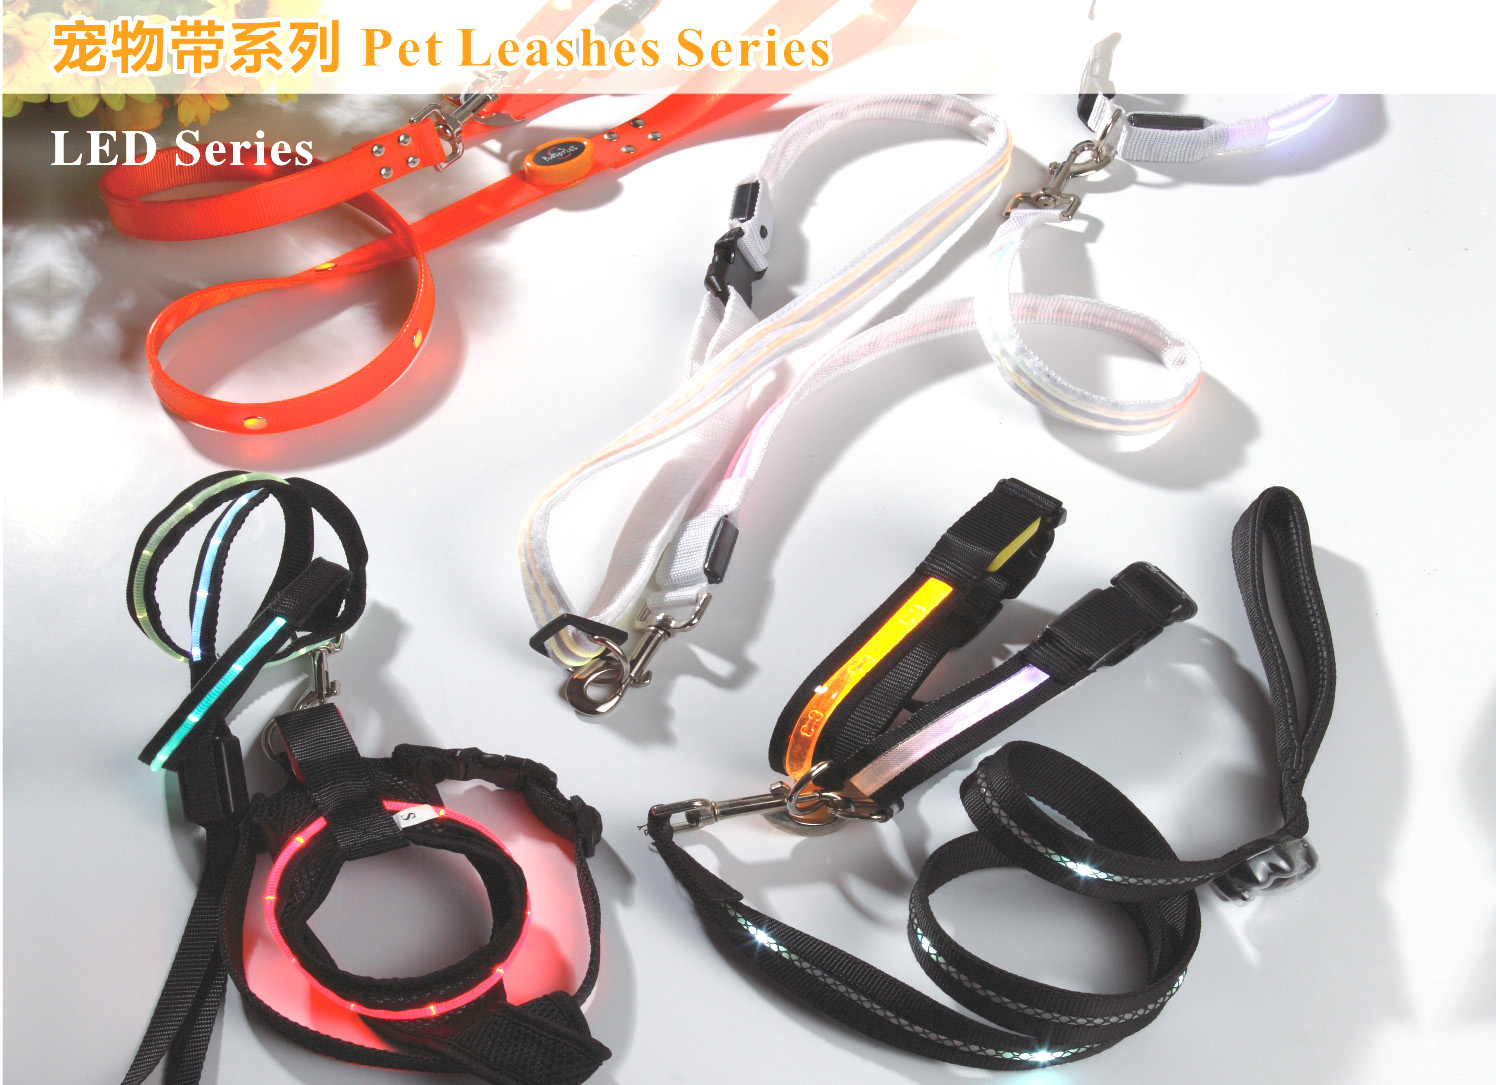 OEM dog leashes